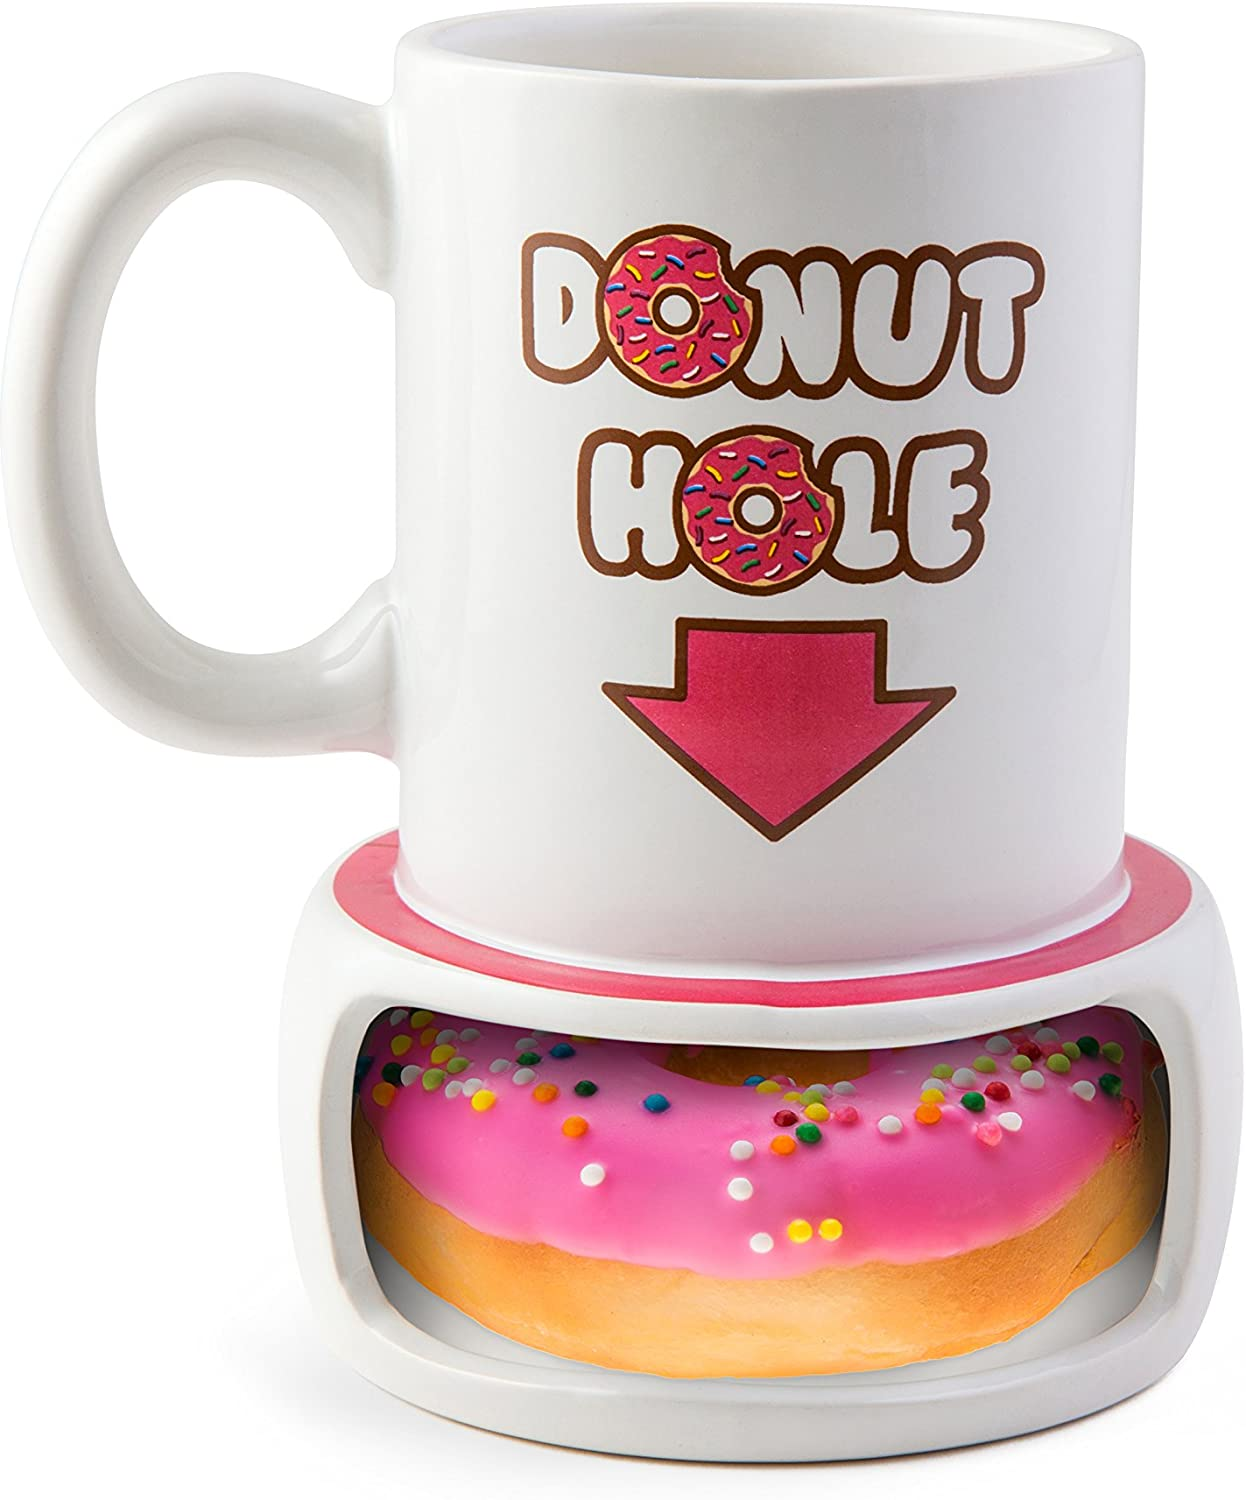 NEW Bigmouth Frosted Donut Coffee Mug